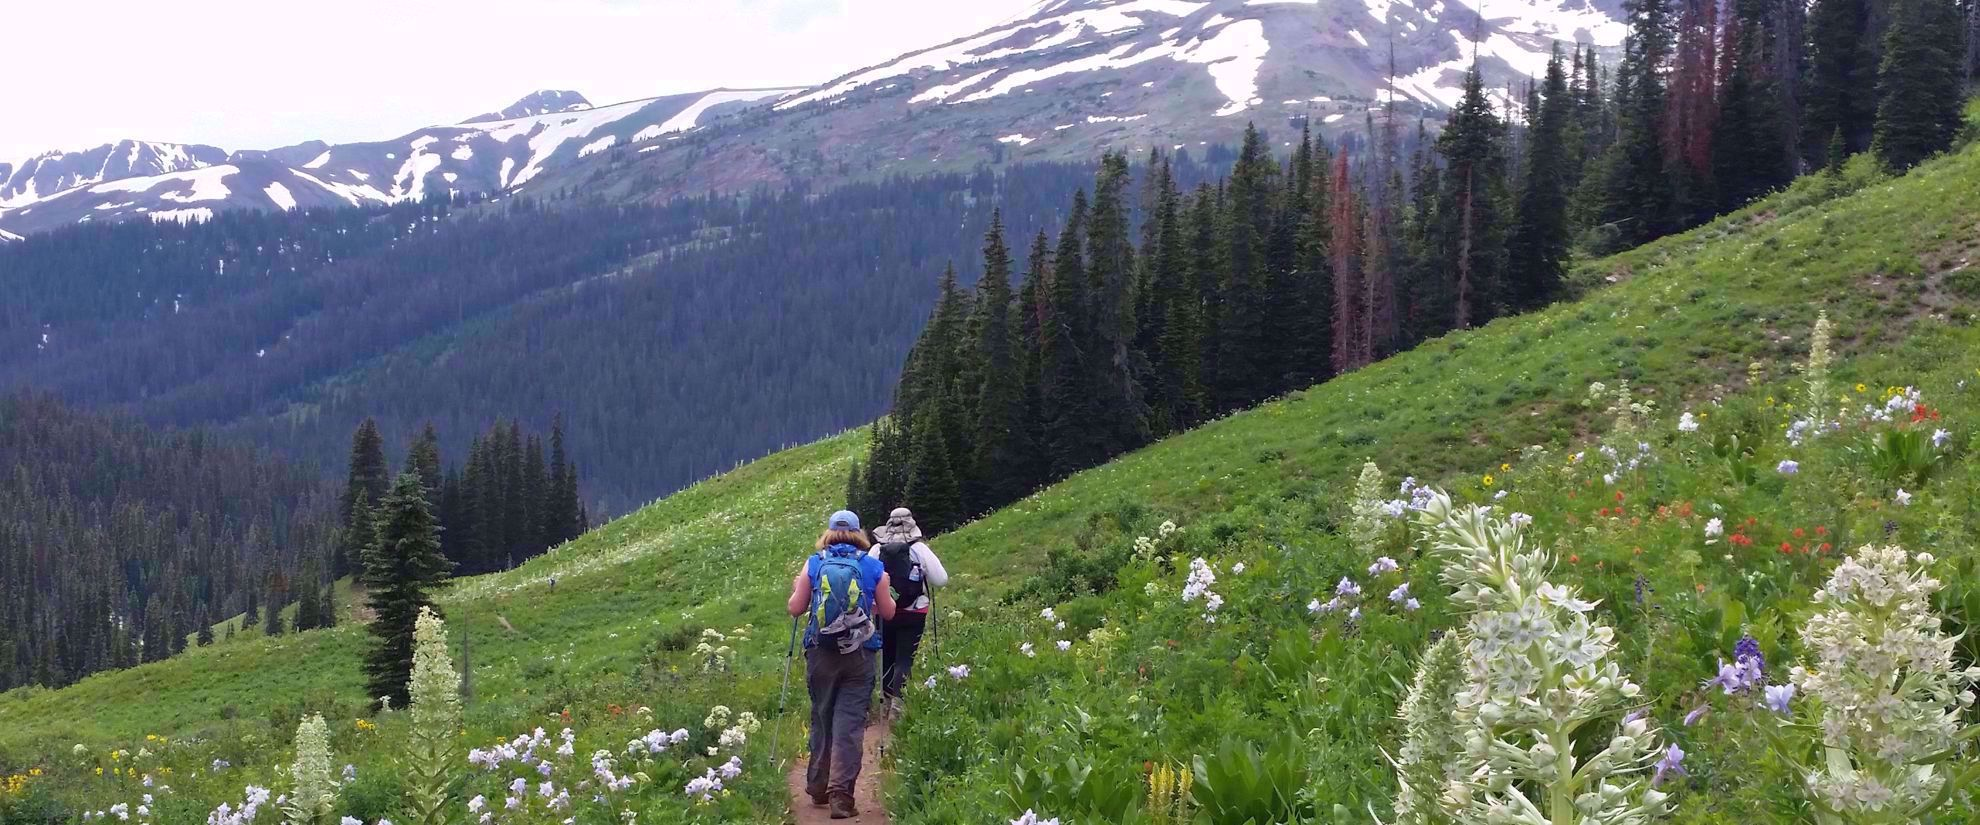 women hiking through wildflower meadow in colorado